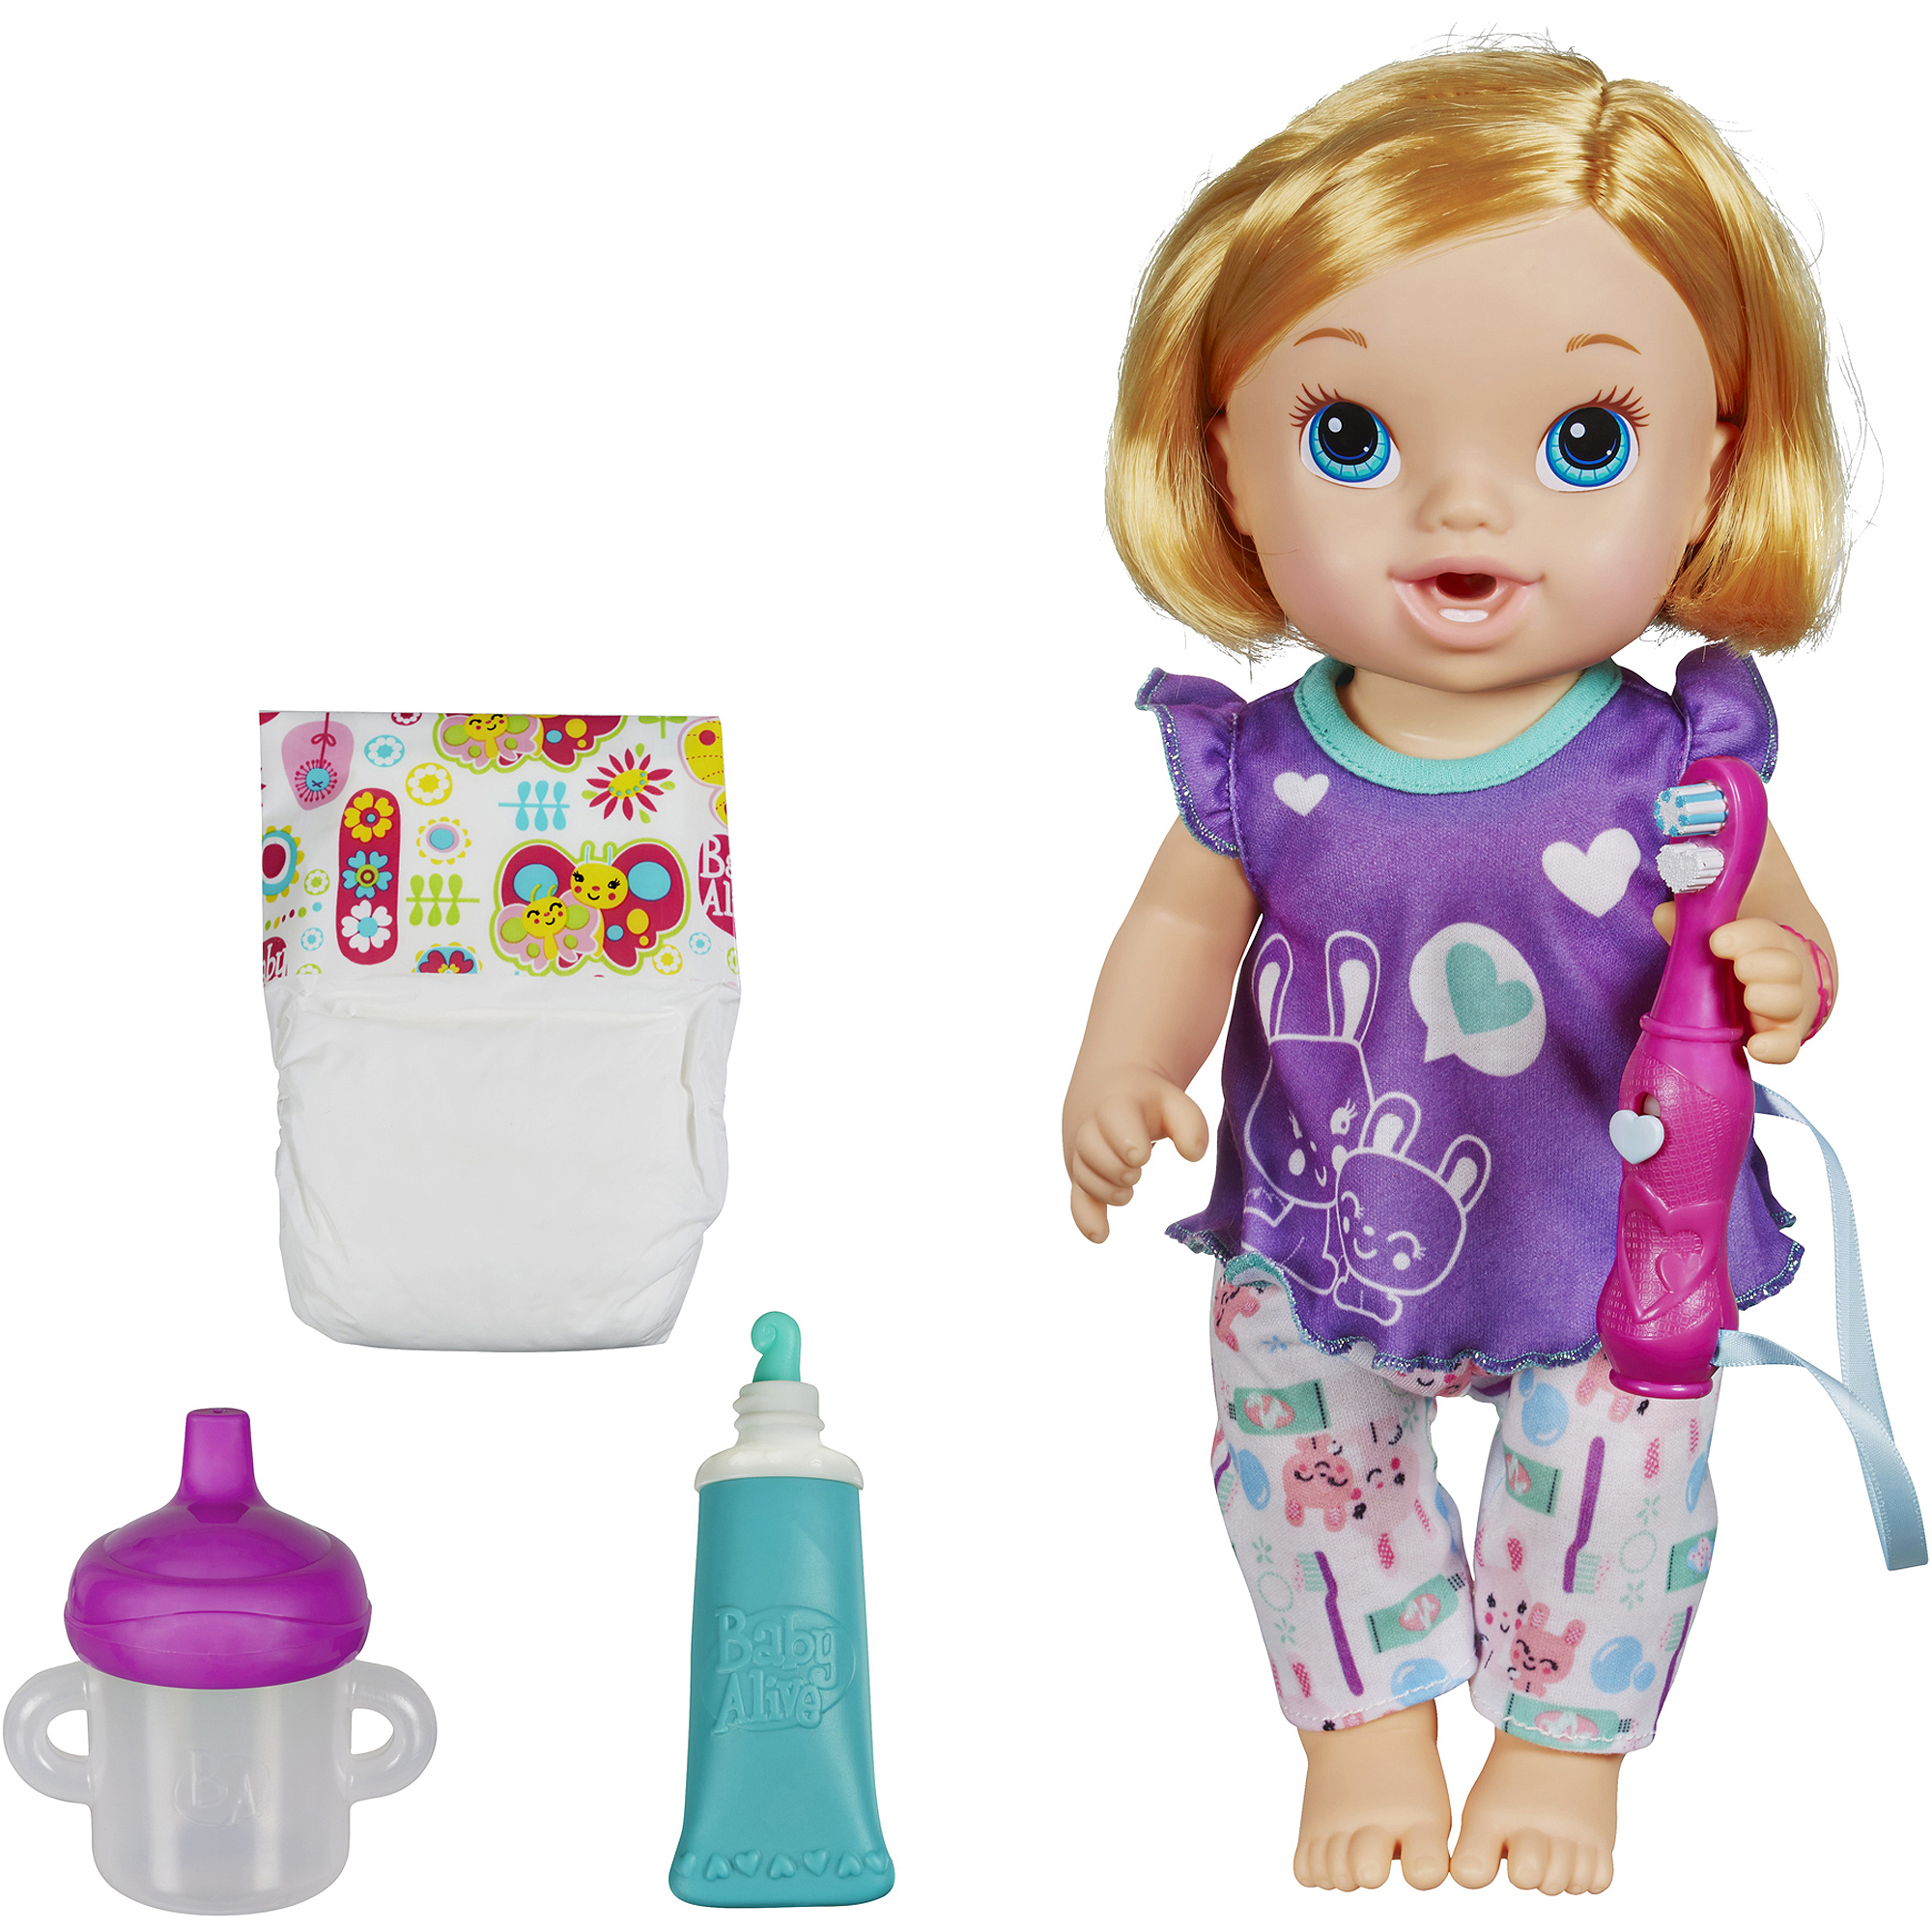 Baby Alive Brushy Brushy Baby Doll - Blonde Hair